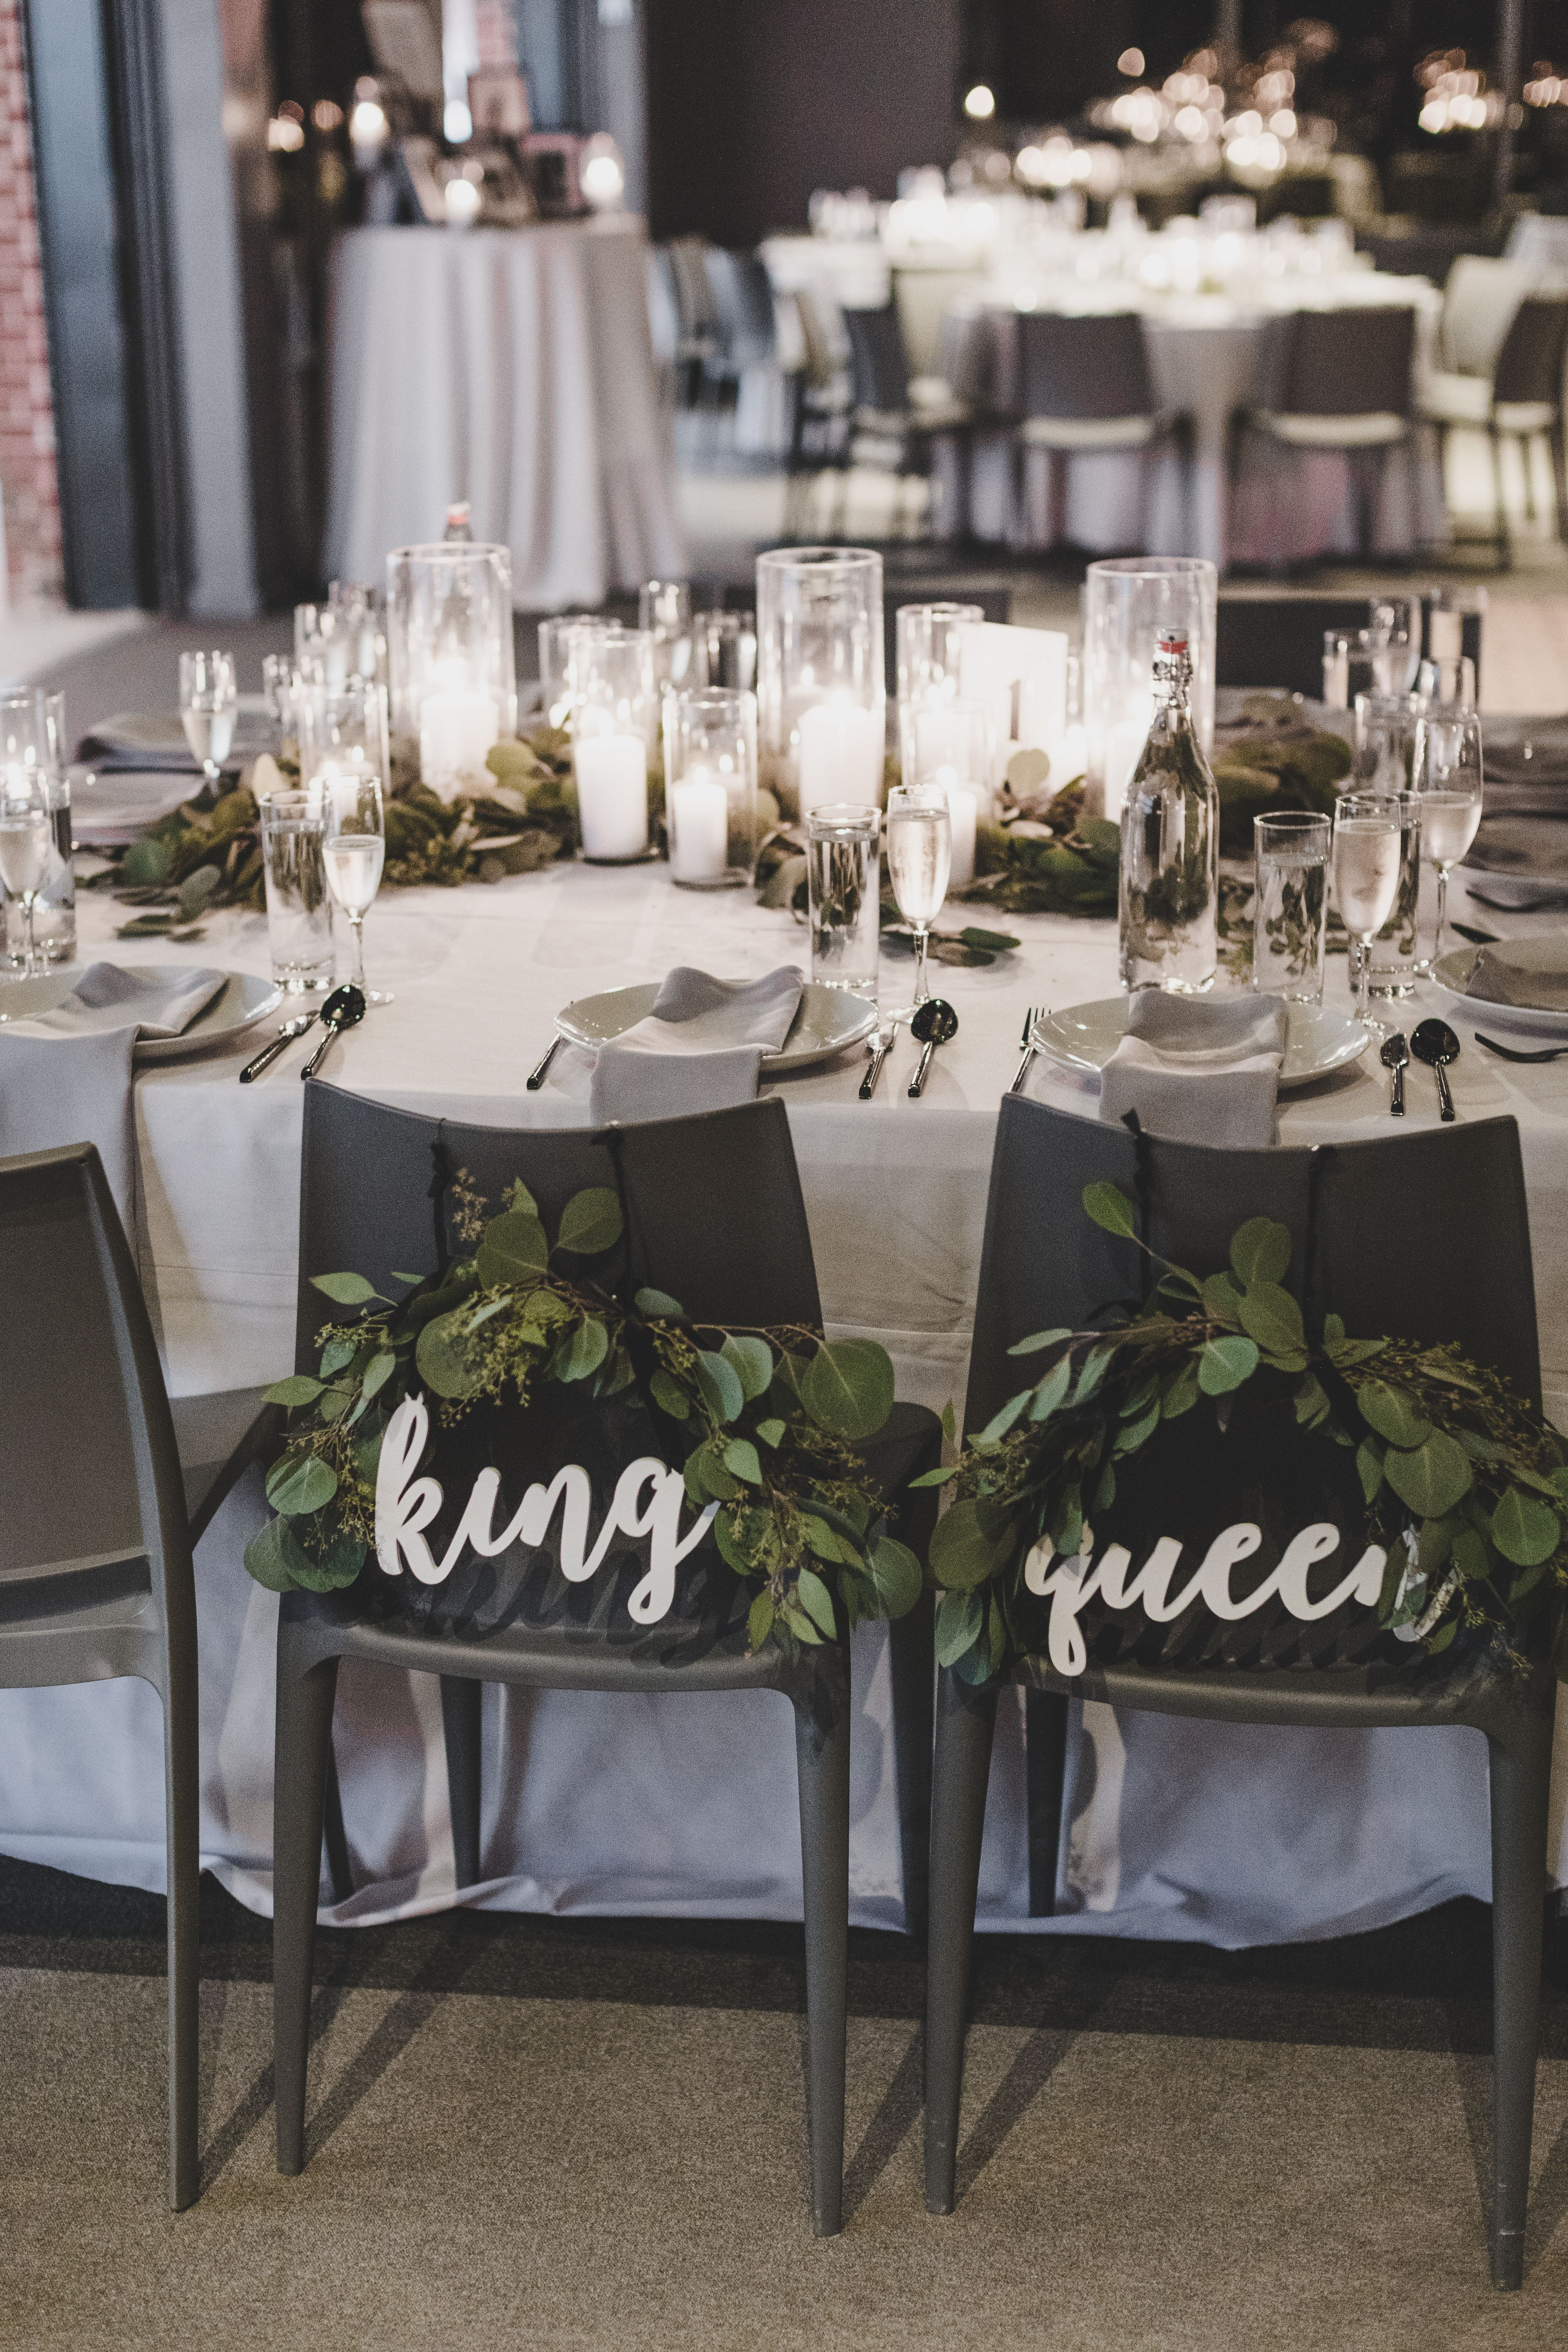 Bride And Groom Chair Signs In 2020 Wedding Decor Elegant Minimalist Wedding Decor Modern Minimalist Wedding